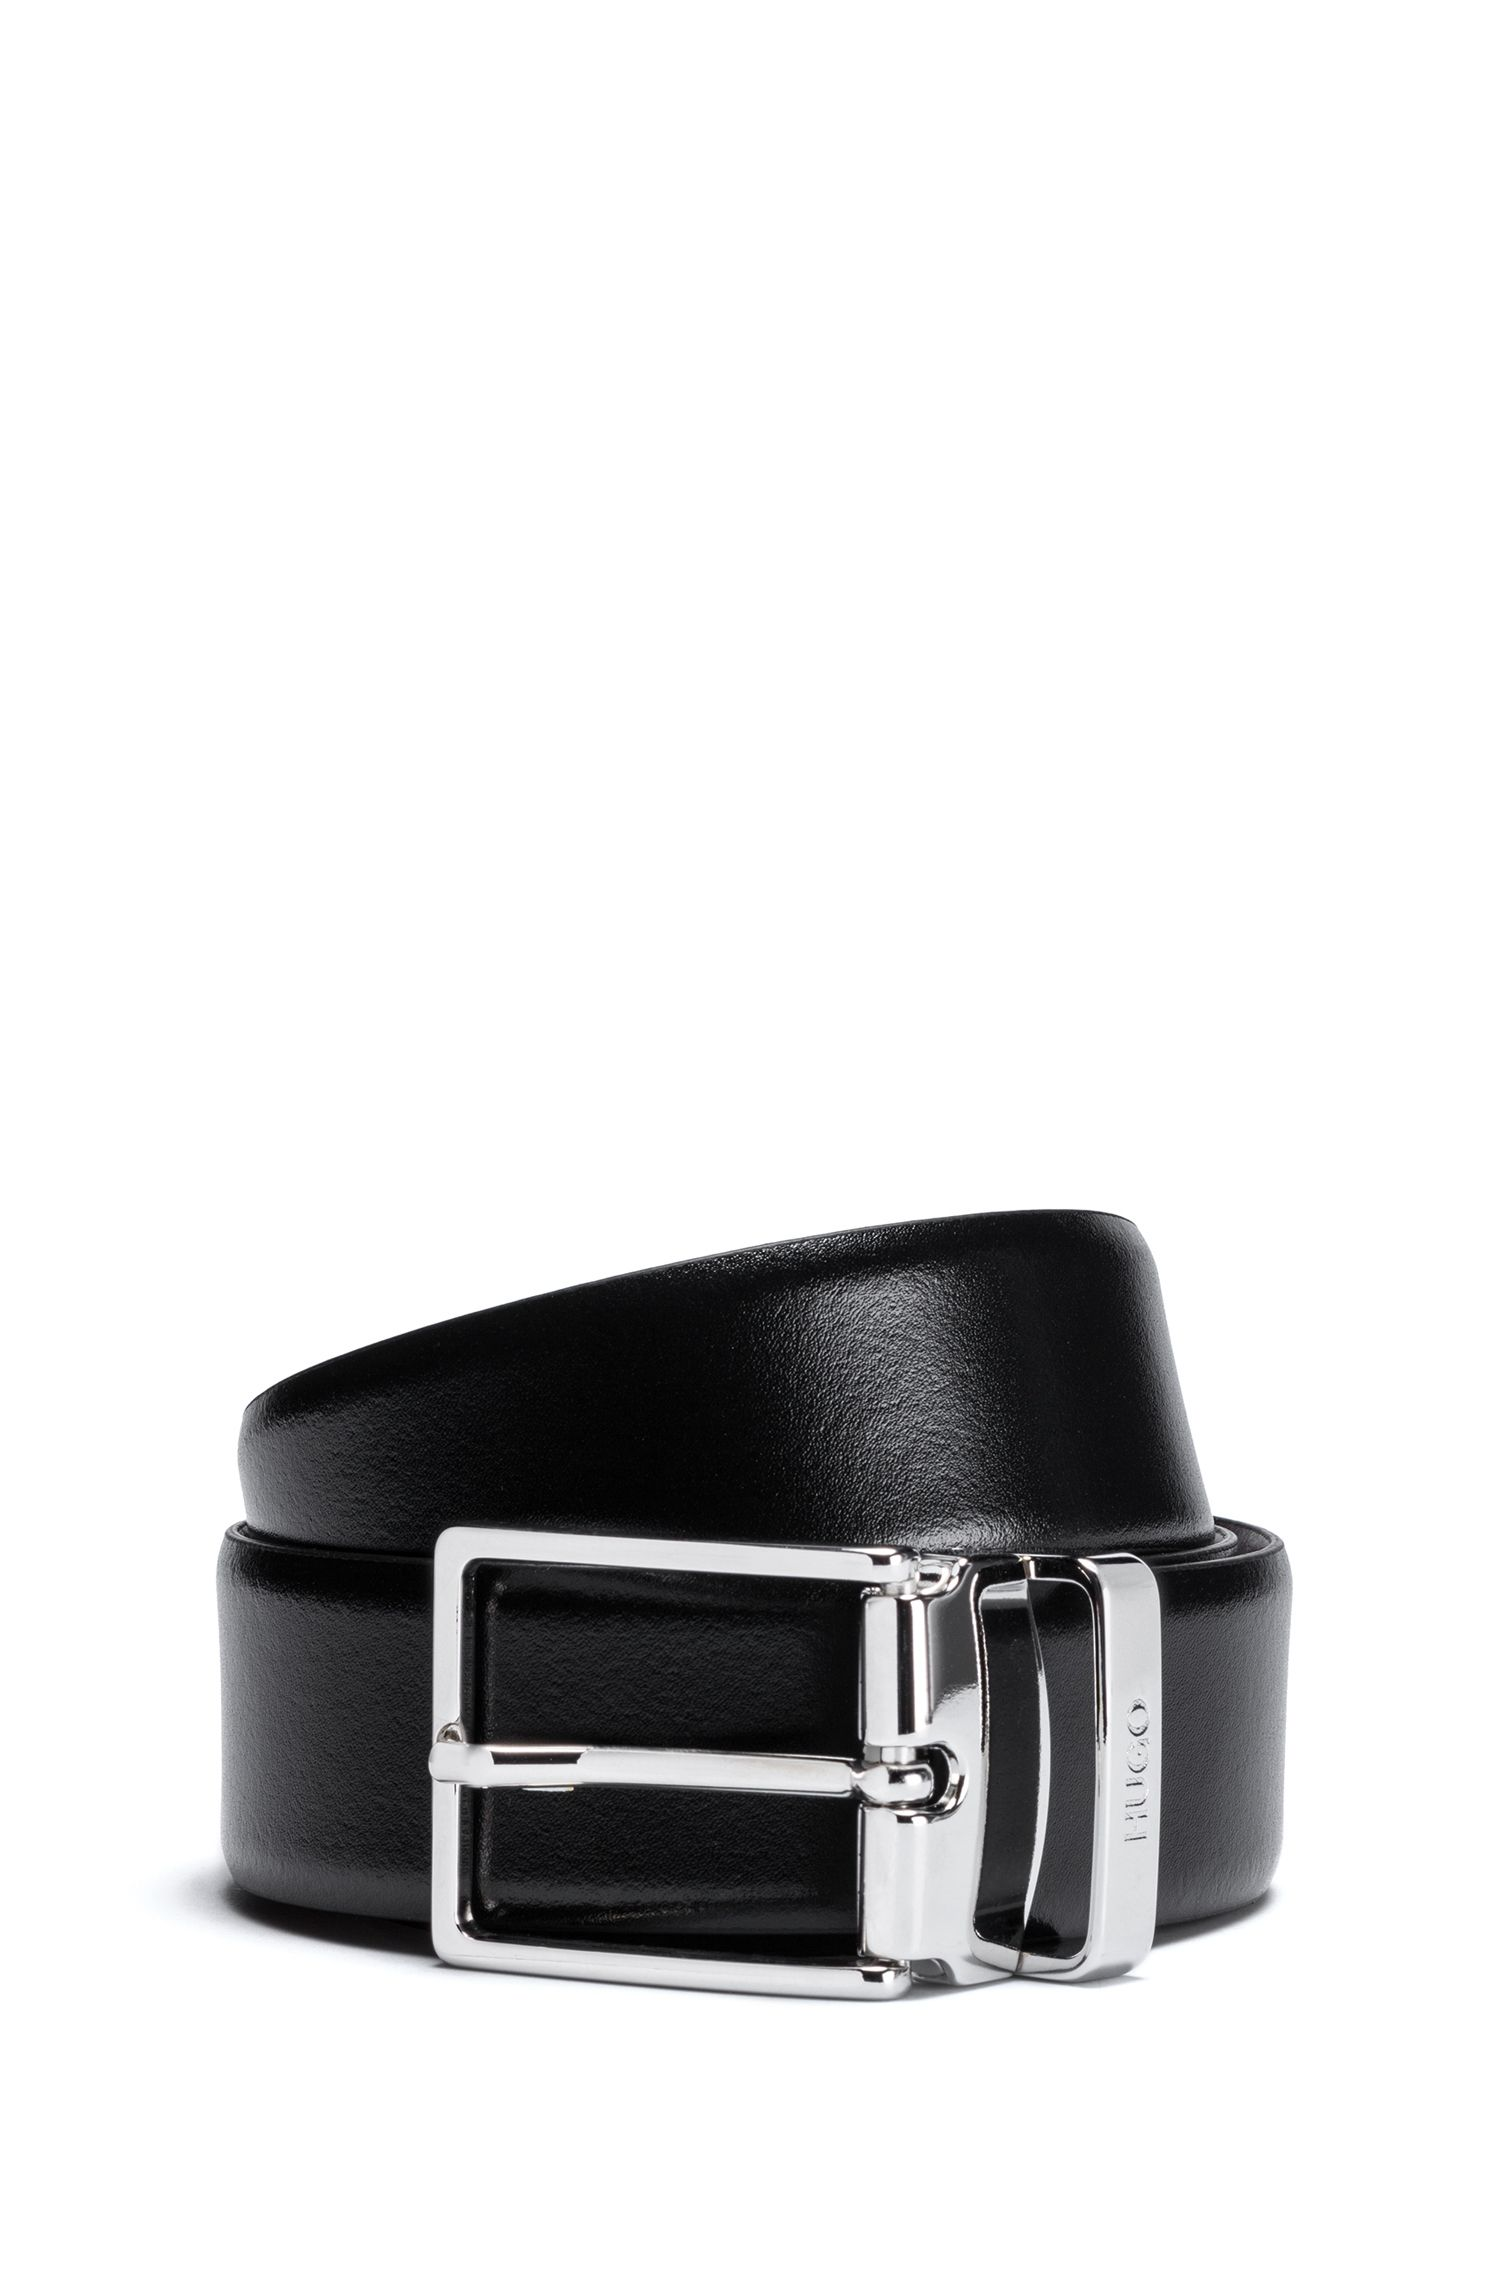 Reversible leather belt with polished pin buckle